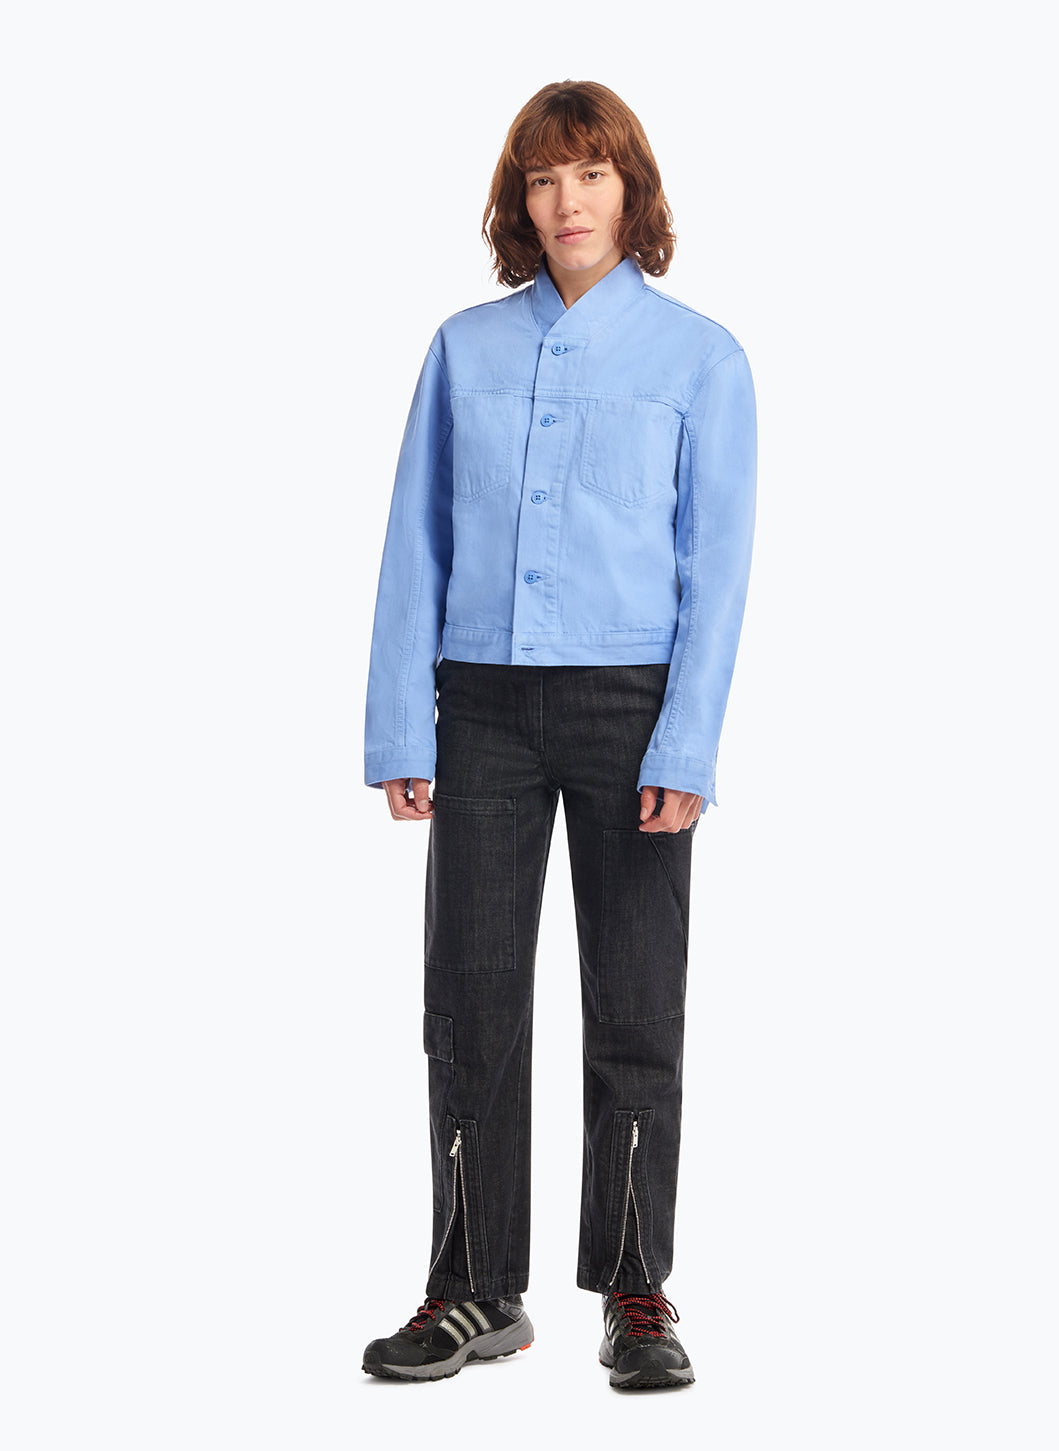 False Collar Jacket in Light Blue Denim